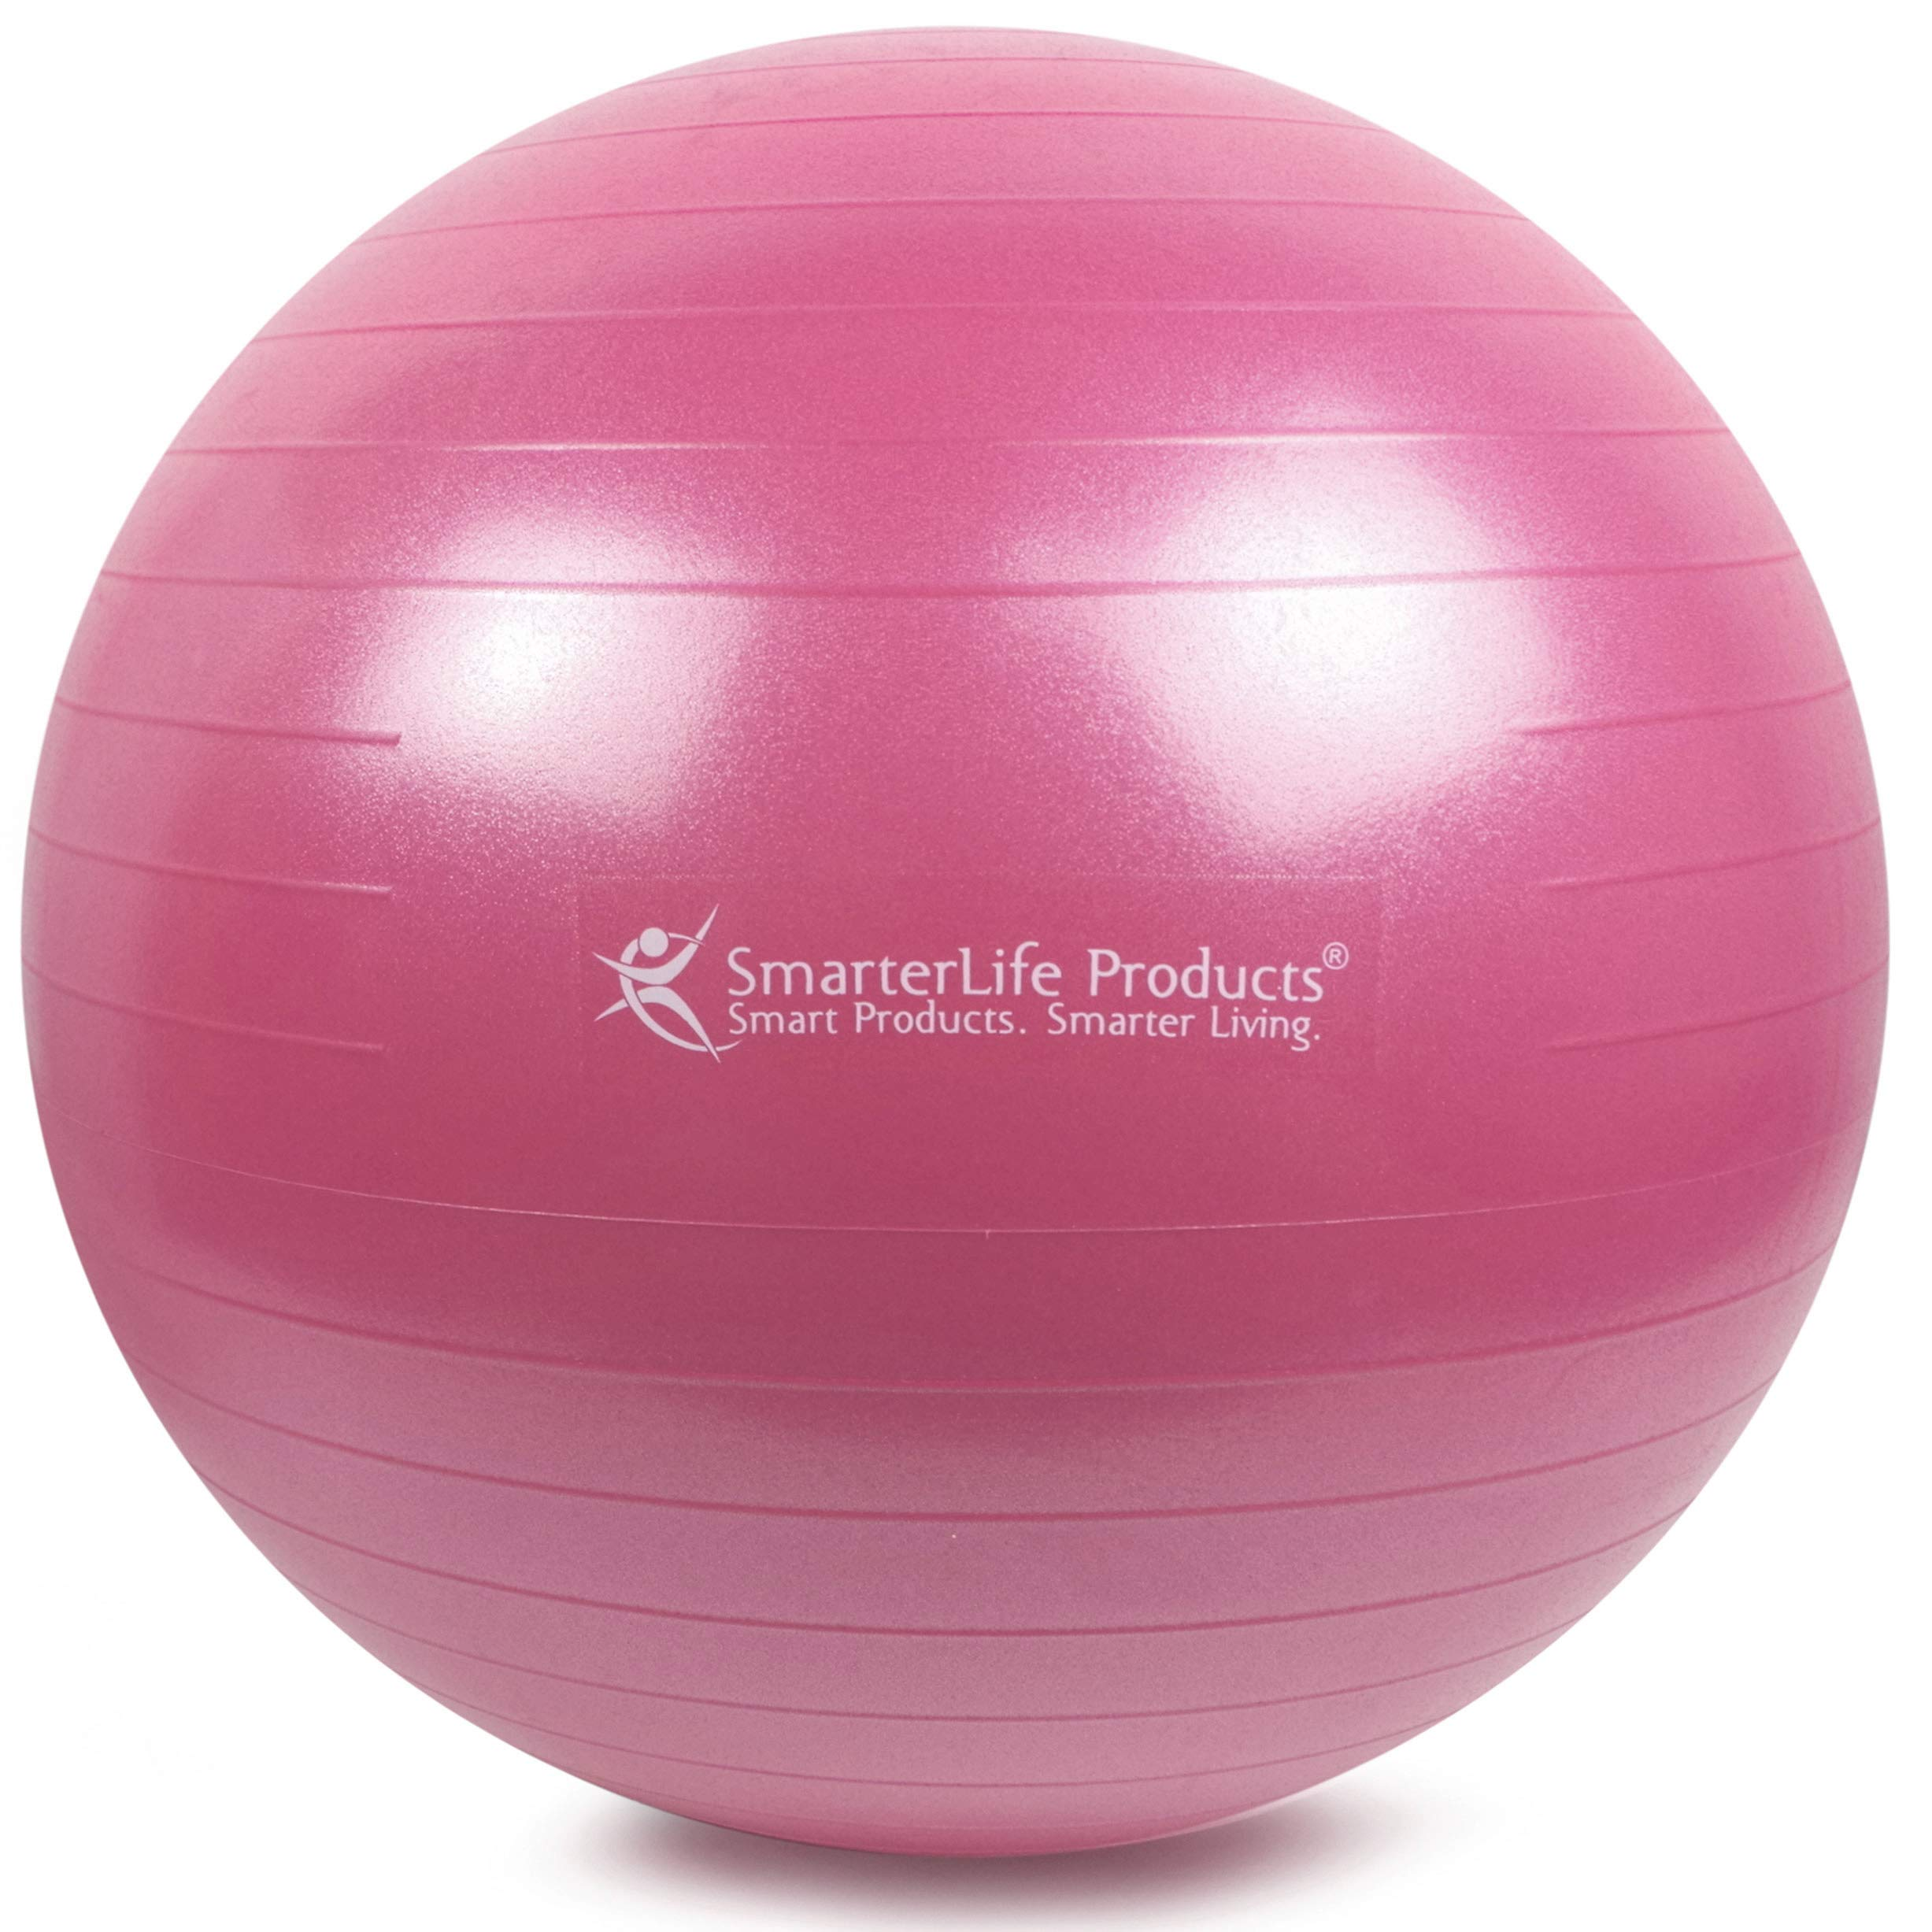 Exercise Ball for Yoga, Balance, Stability from SmarterLife - Fitness, Pilates, Birthing, Therapy, Office Ball Chair, Classroom Flexible Seating - Anti Burst, Non Slip + Workout Guide (Pink, 45) by SmarterLife Products (Image #2)